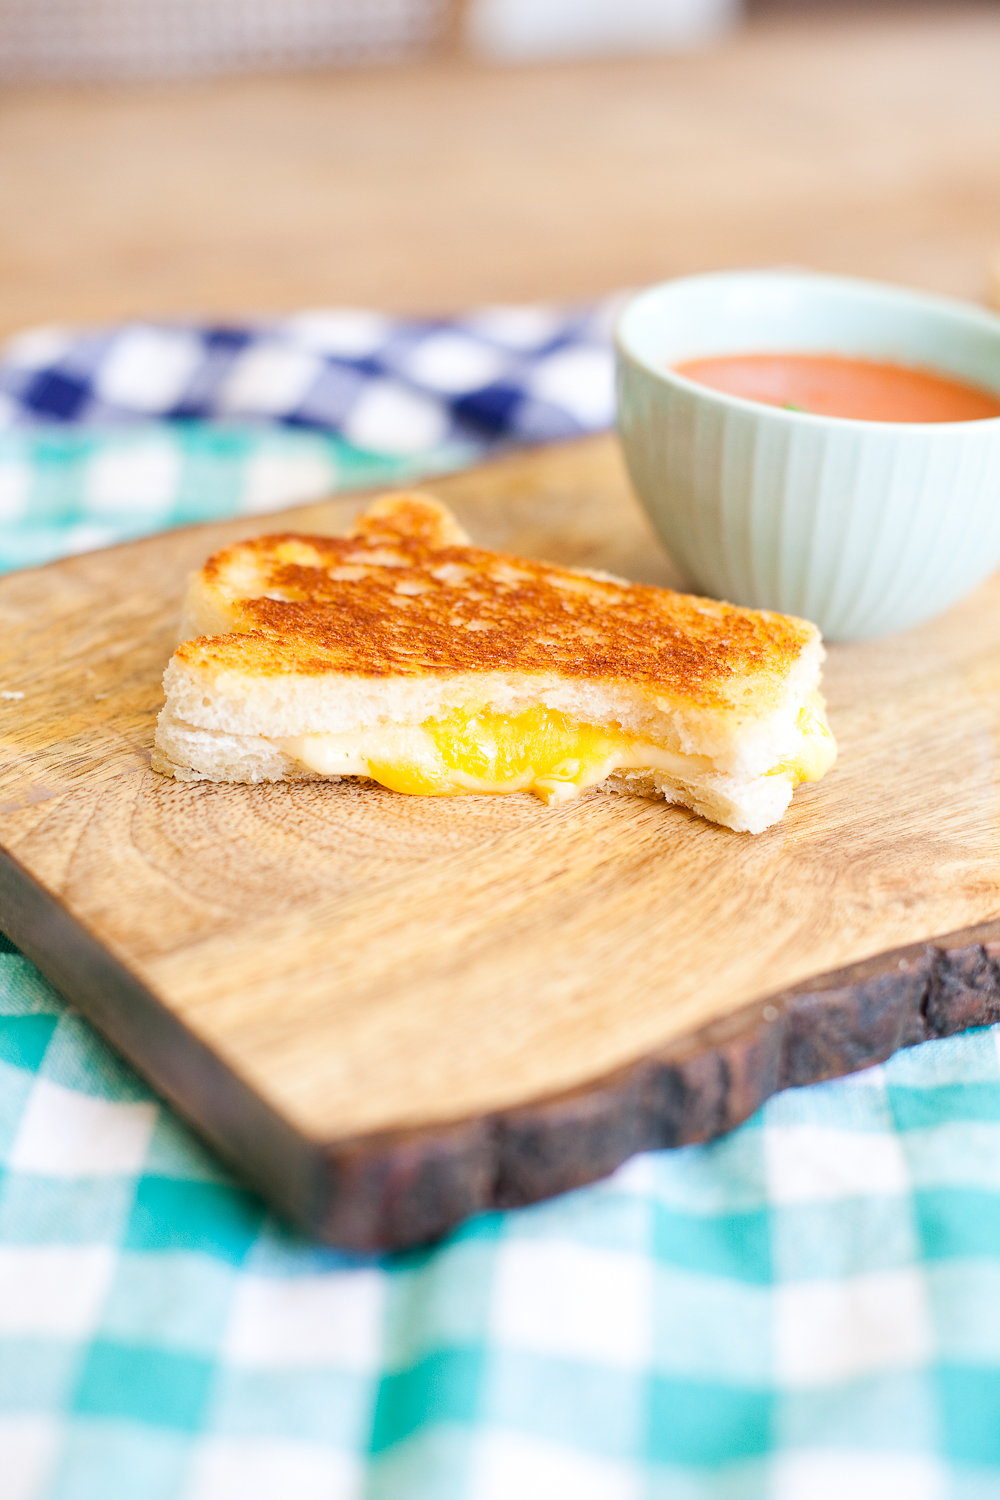 Grilled Cheese and Tomato Soup on a wooden board